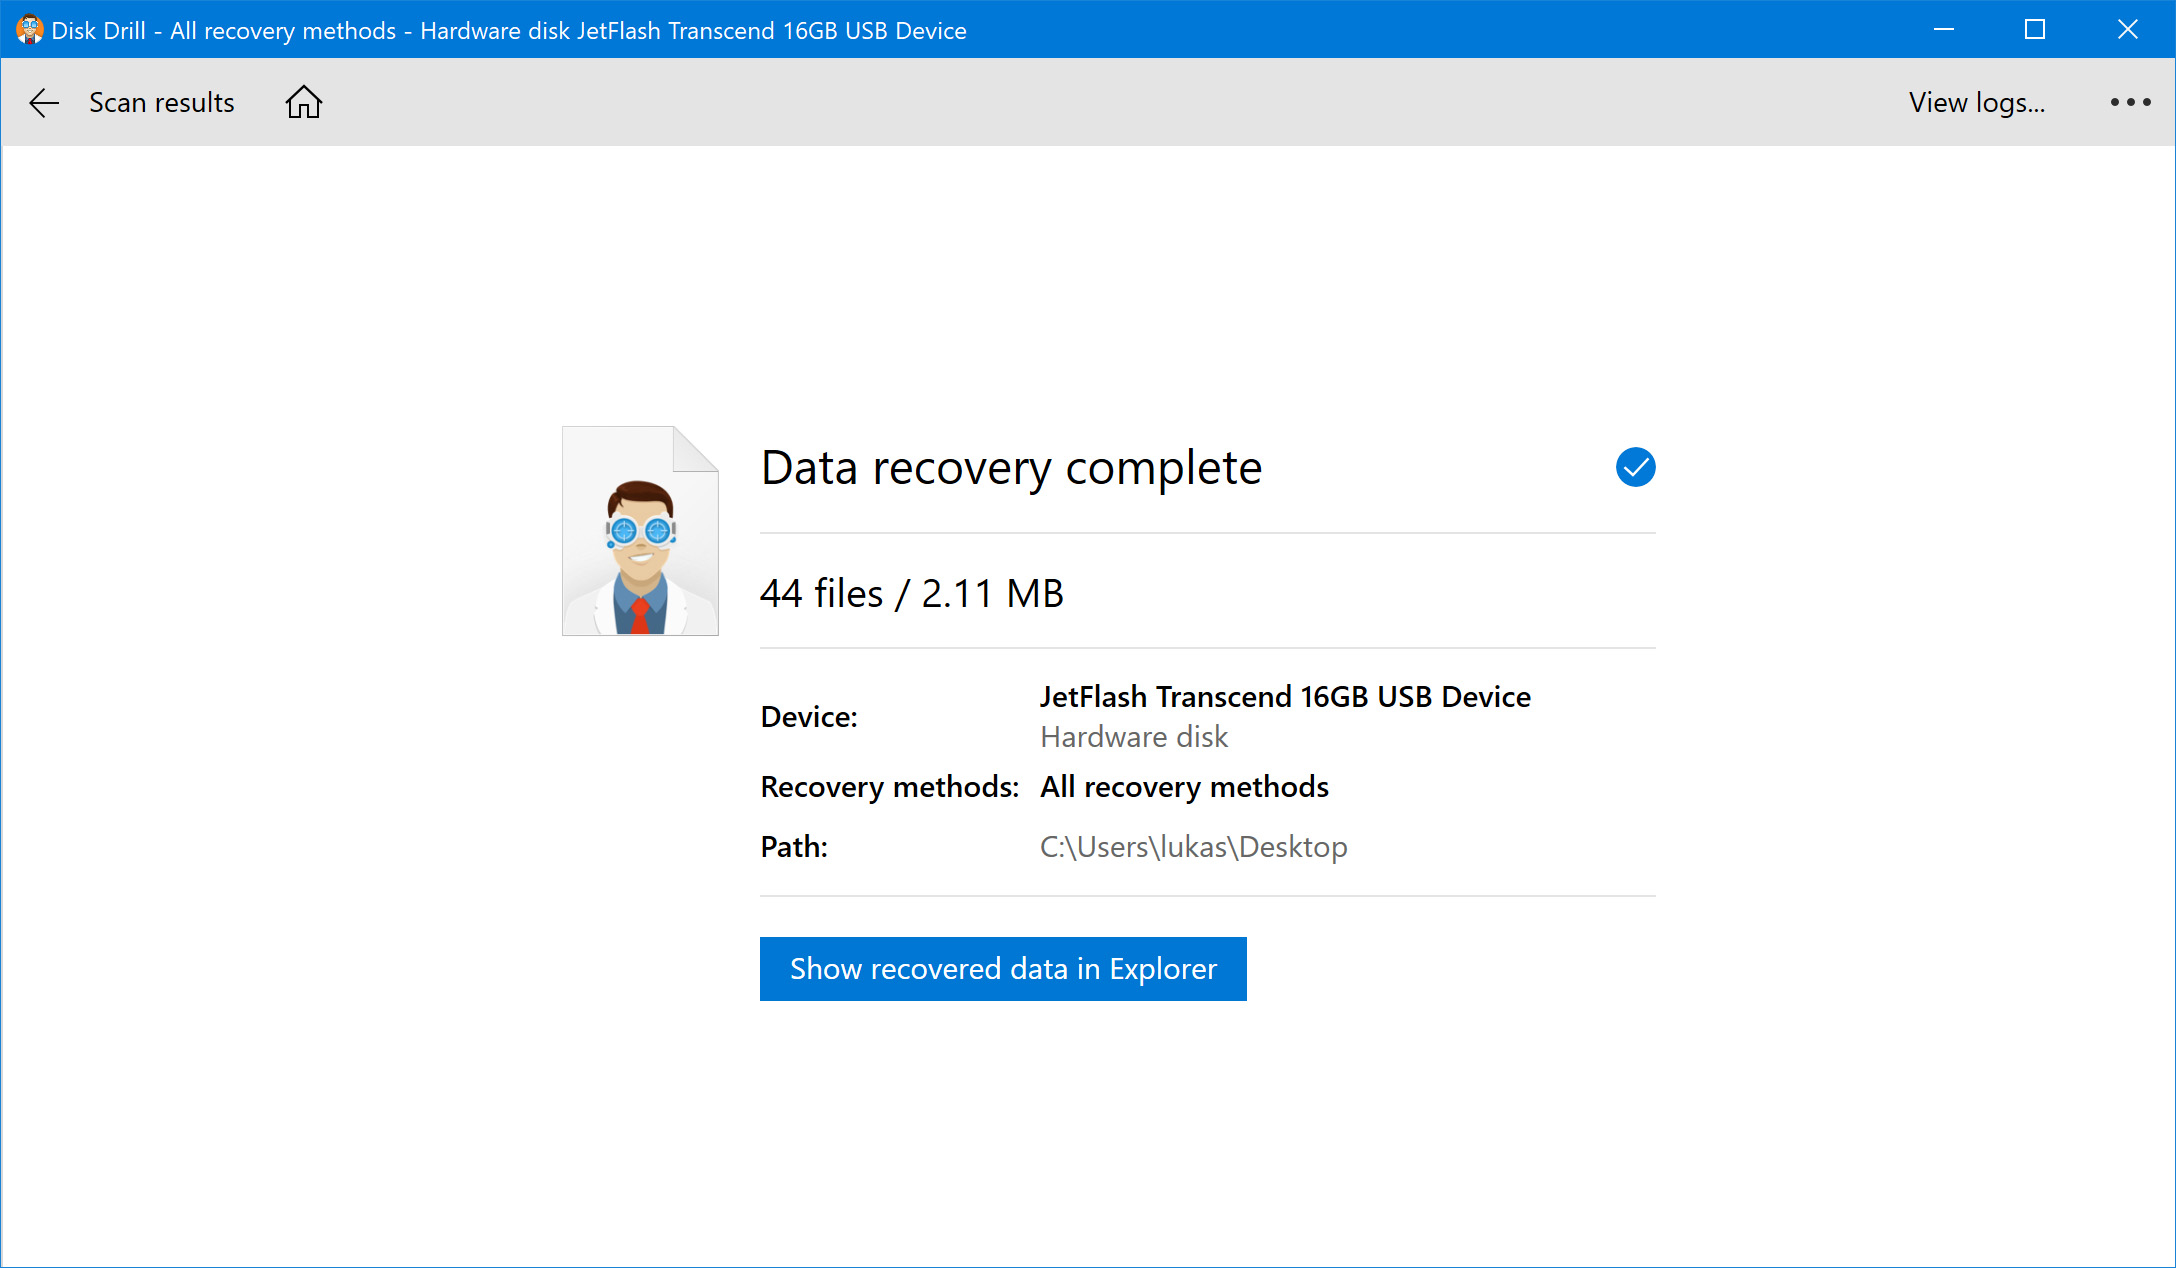 HFS Recovery of Deleted Files is now Complete